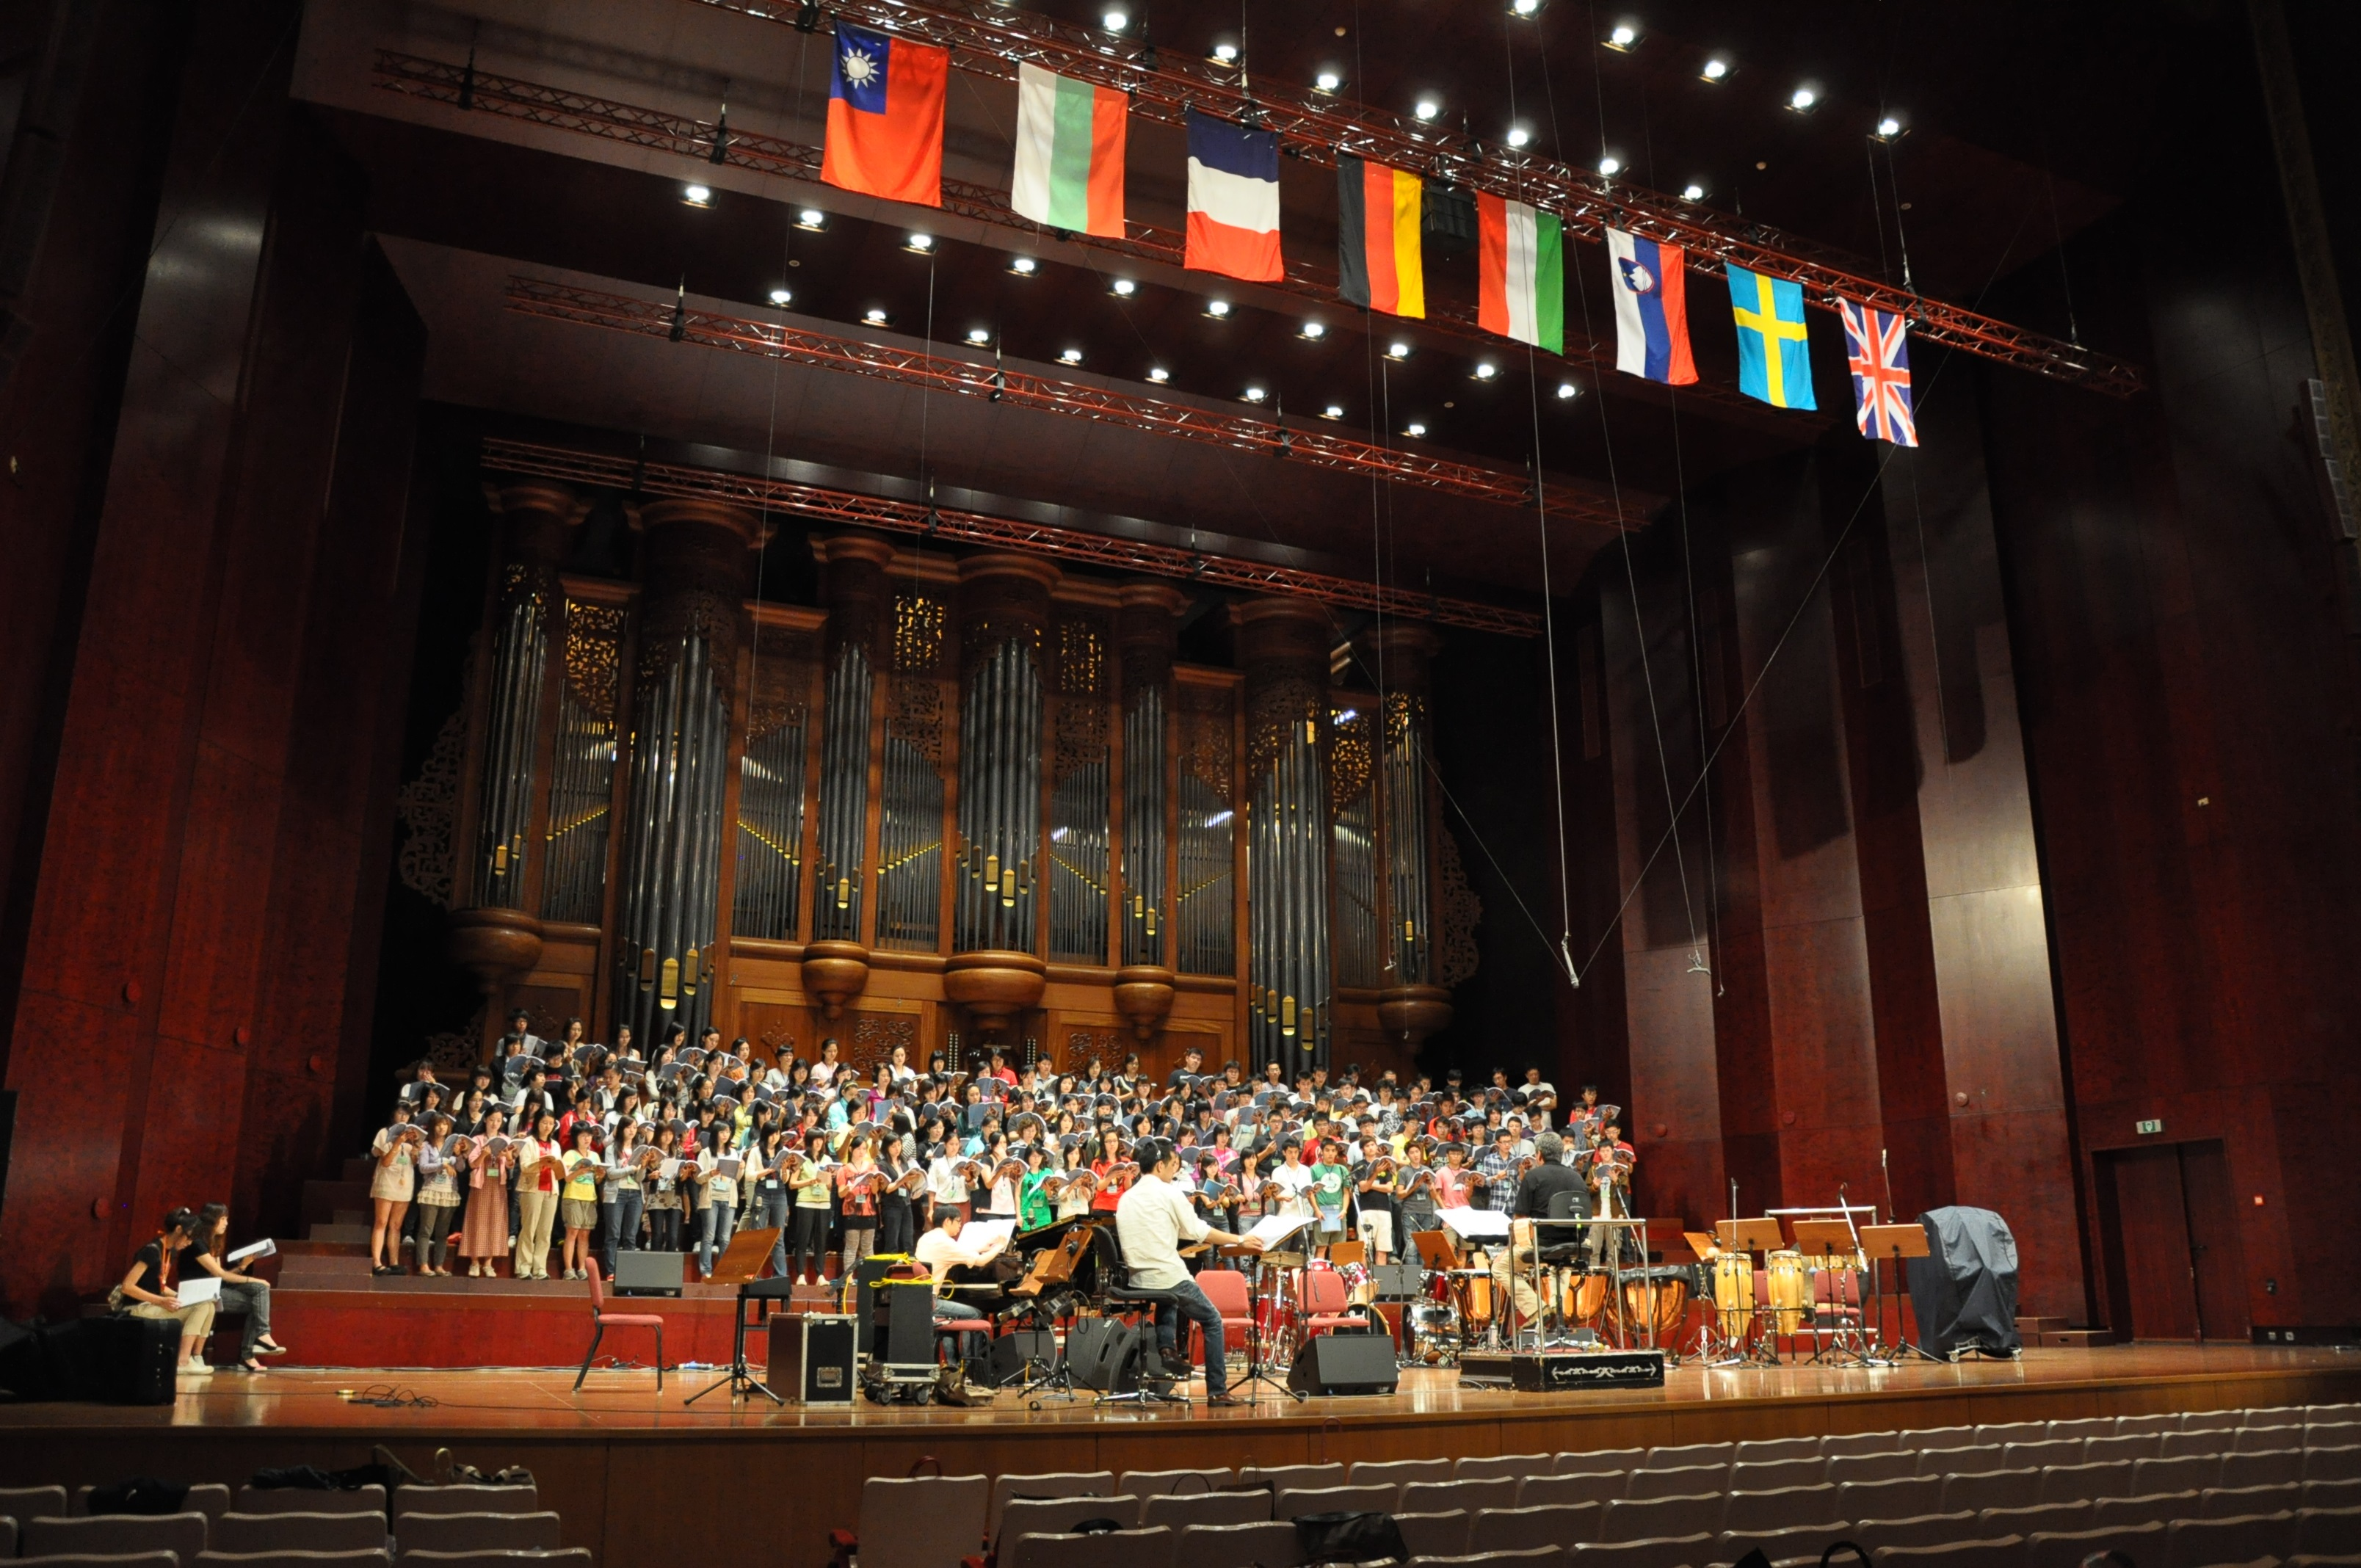 The Choral Music of Taiwan - The IFCM Magazine